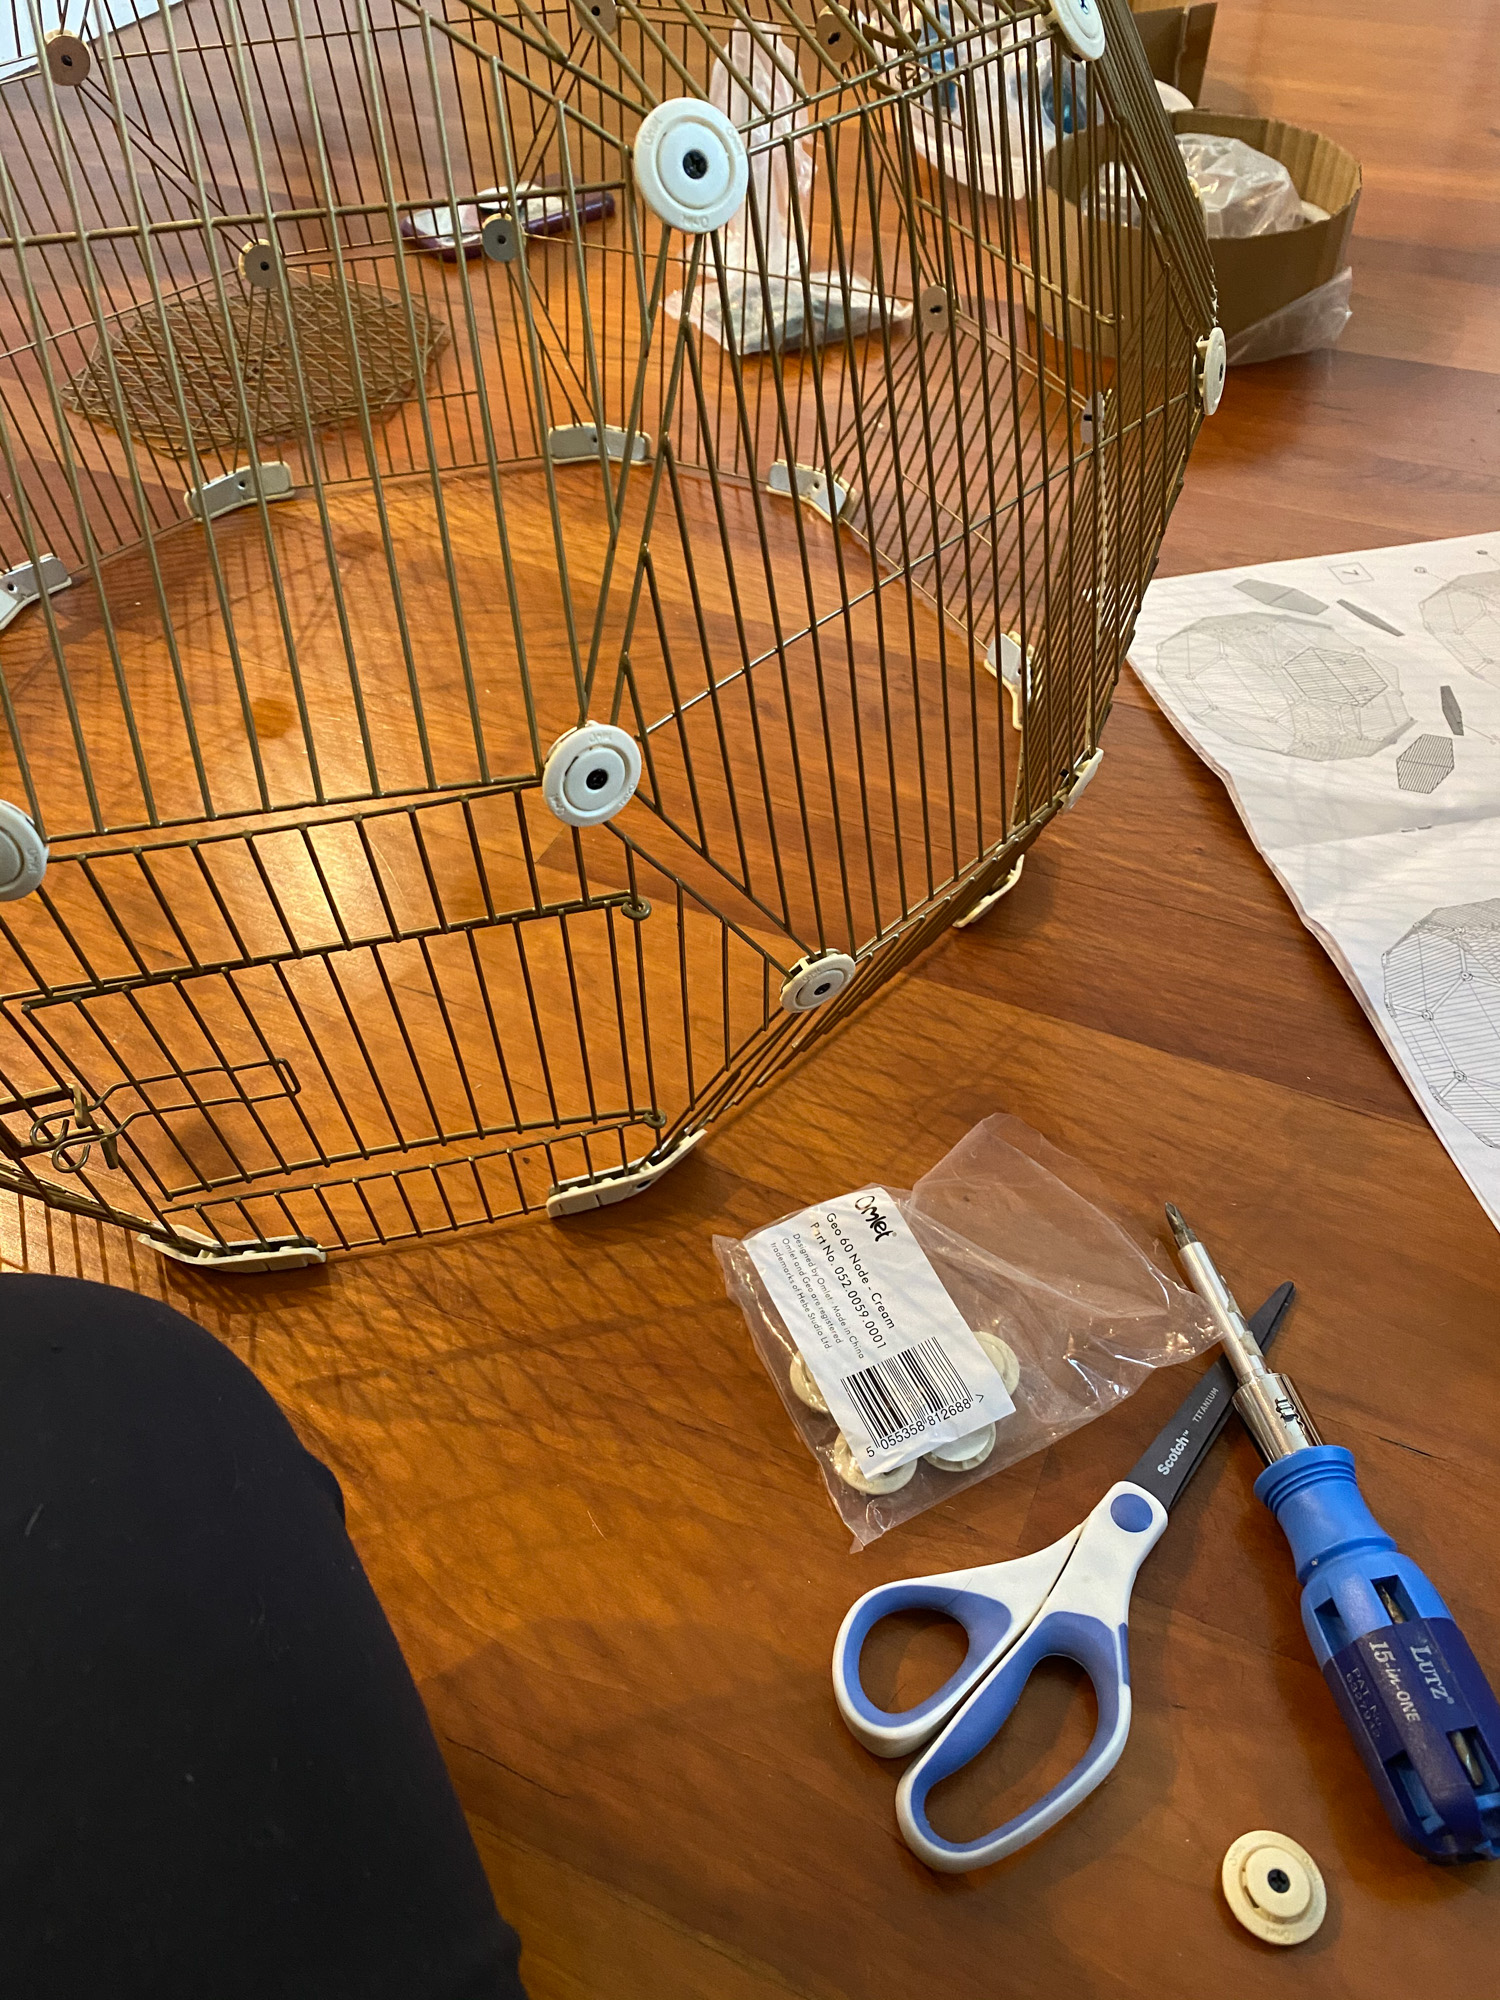 Assembling the Omlet Geo Bird Cage